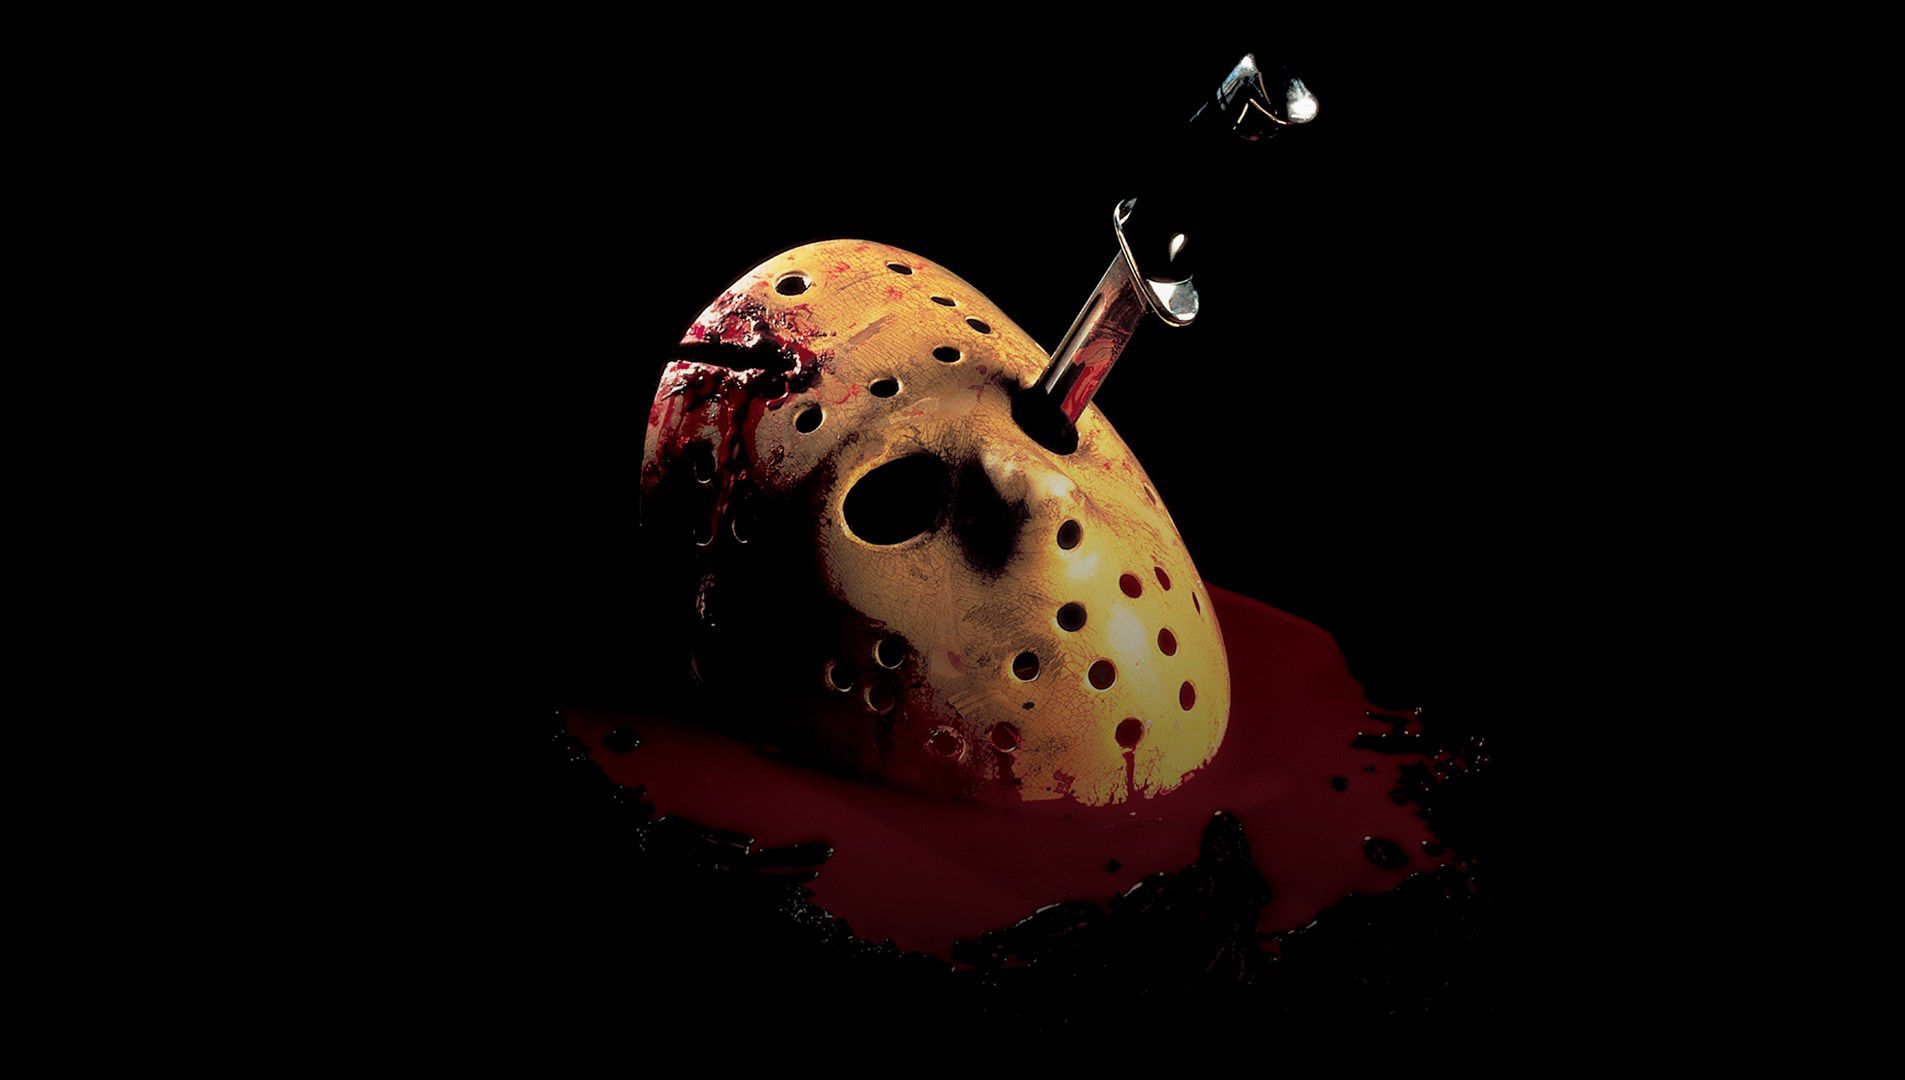 Friday the 13th Saga - Jason Mask